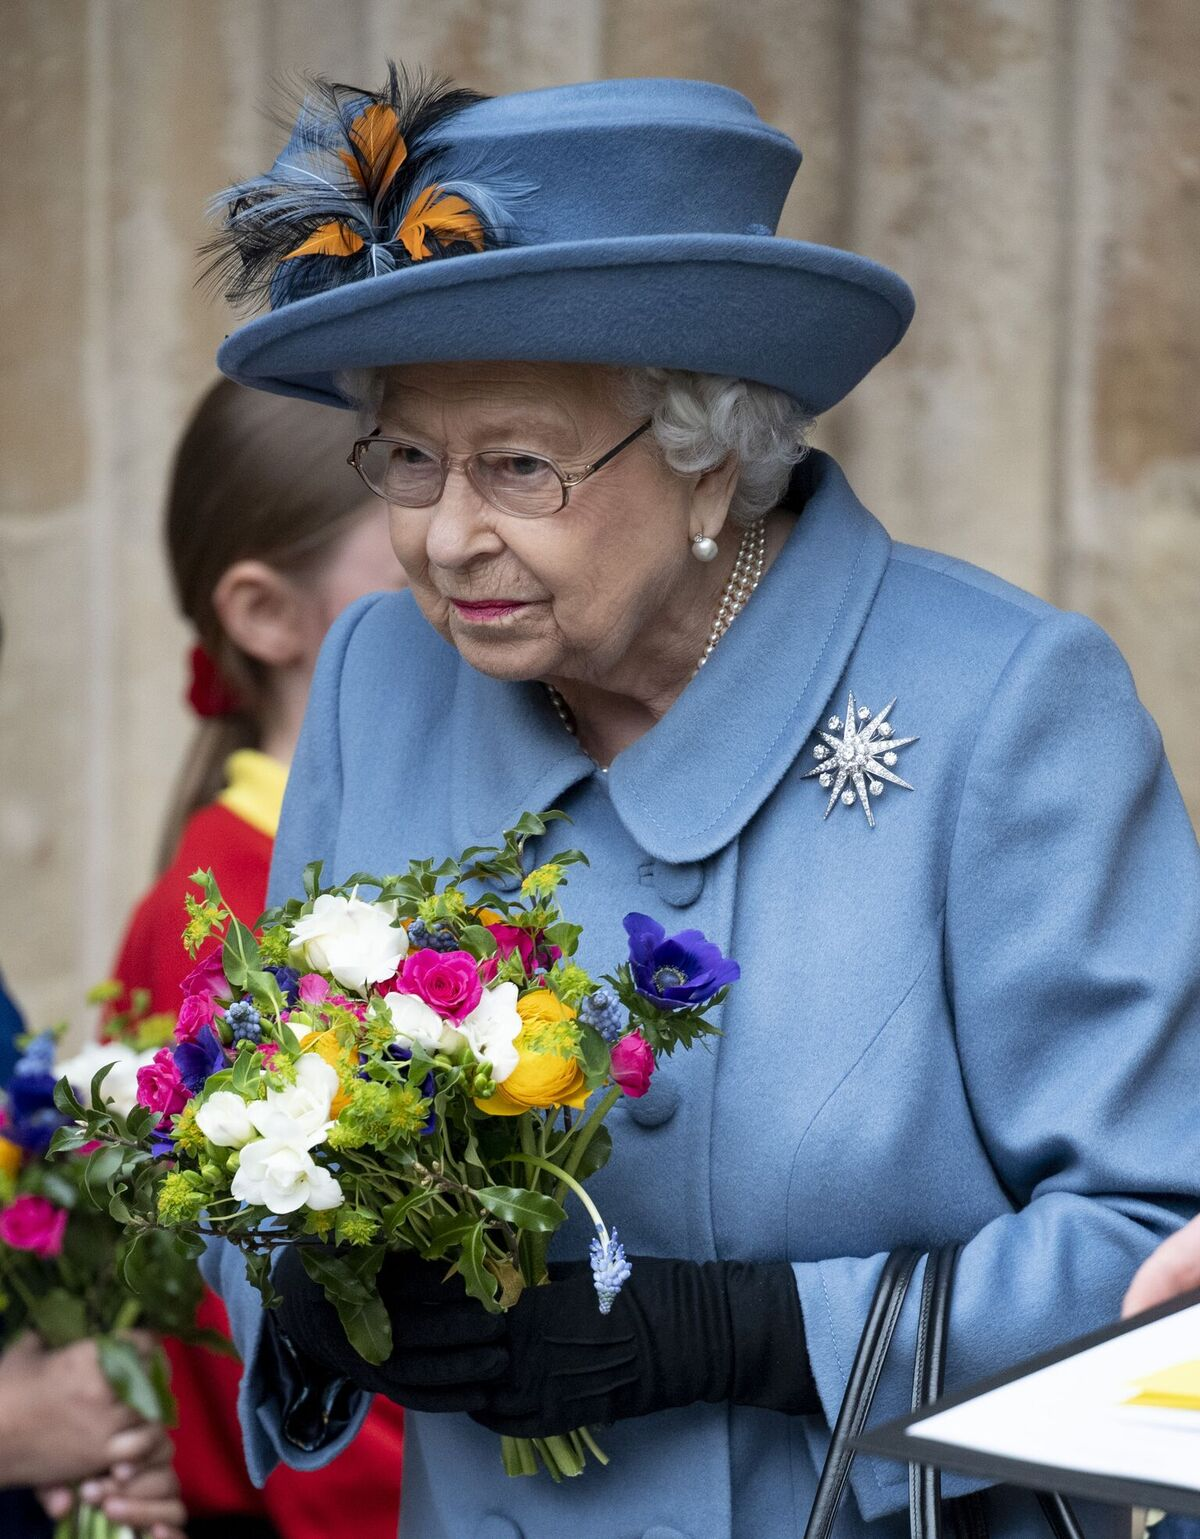 Queen Elizabeth II at the Commonwealth Day Service held at Westminster Abbey on March 9, 2020, in London, England | Photo: Getty Images